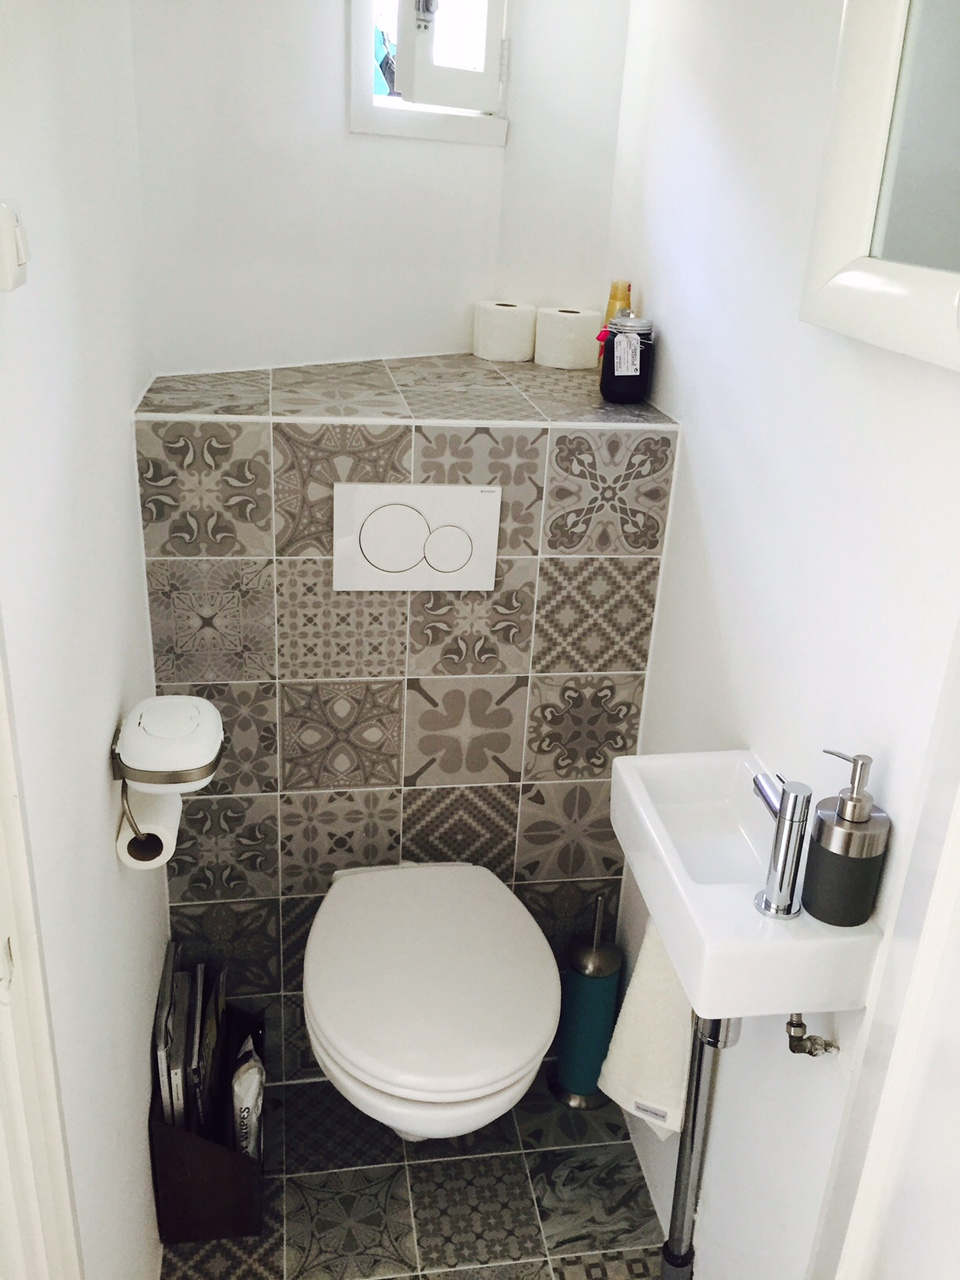 Patroontegels in toilet - Patchwork